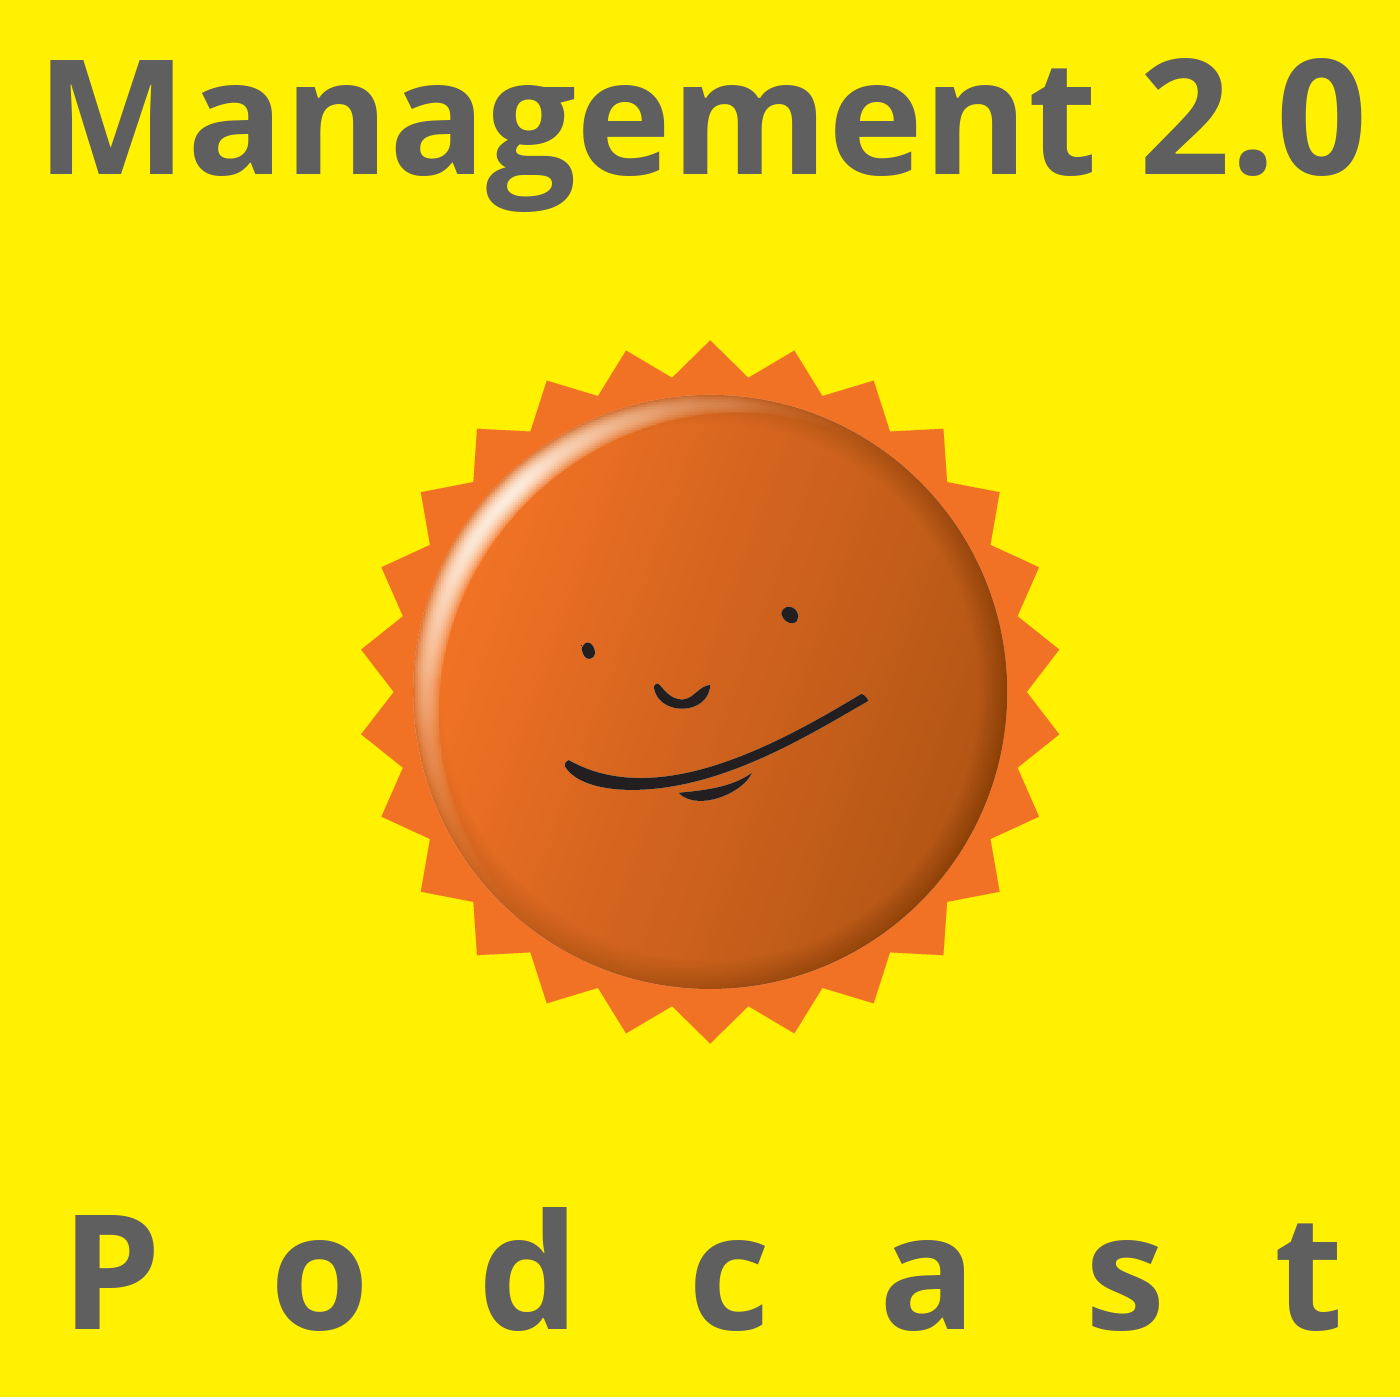 Management 2.0 Podcast